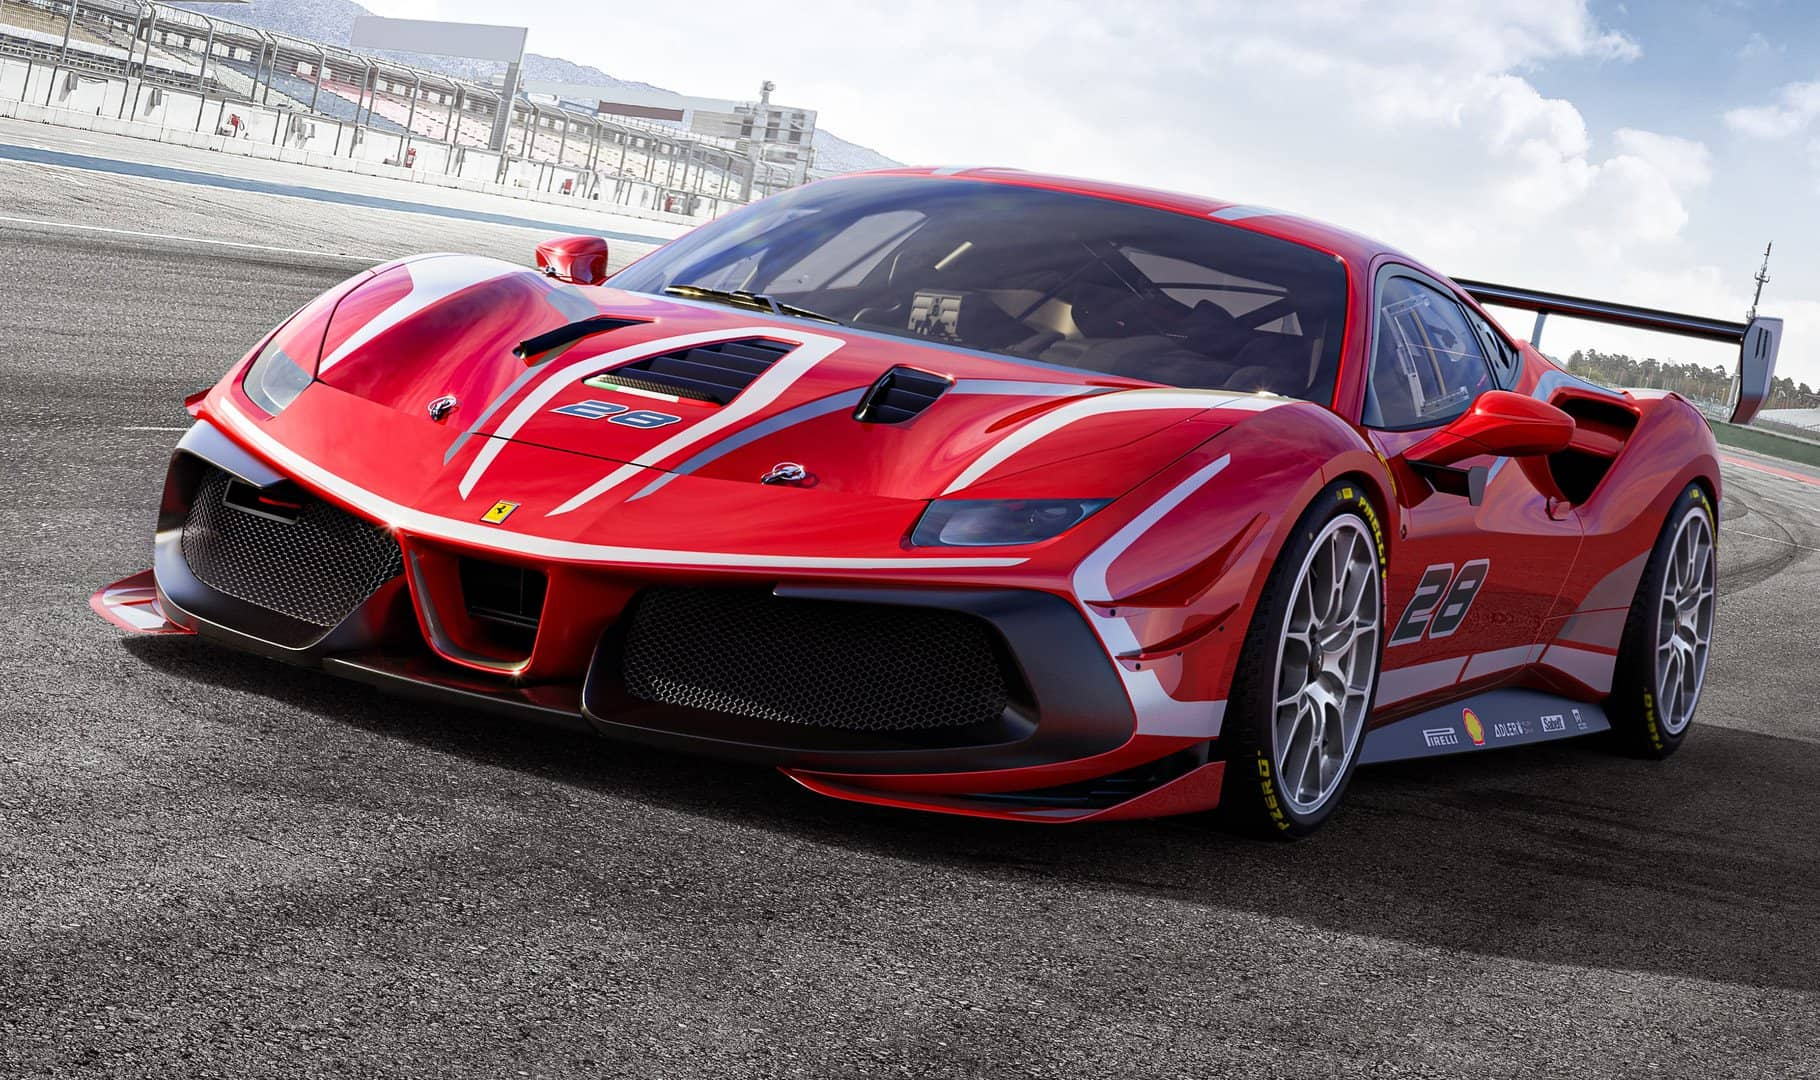 Breathtaking Has A New Meaning With The New Ferrari 488